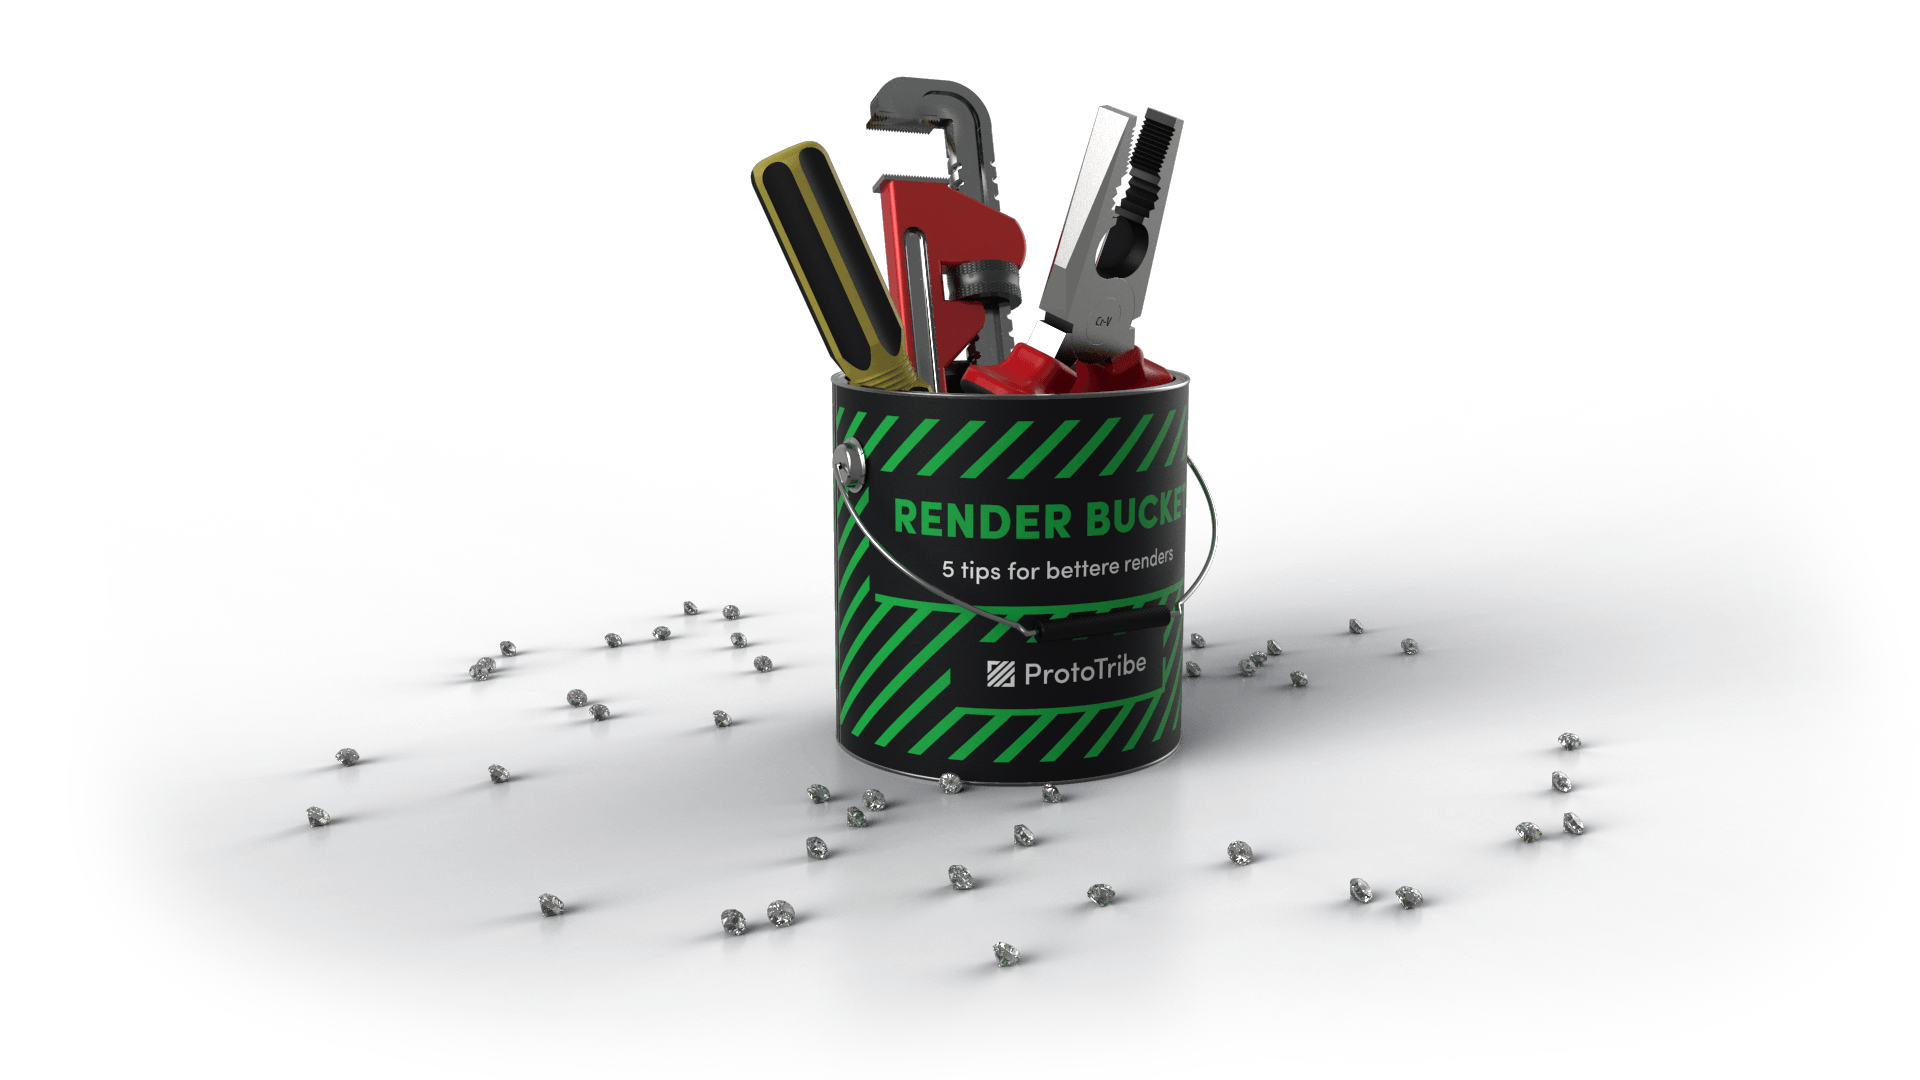 Rendered tools in a bucket from Prototribe